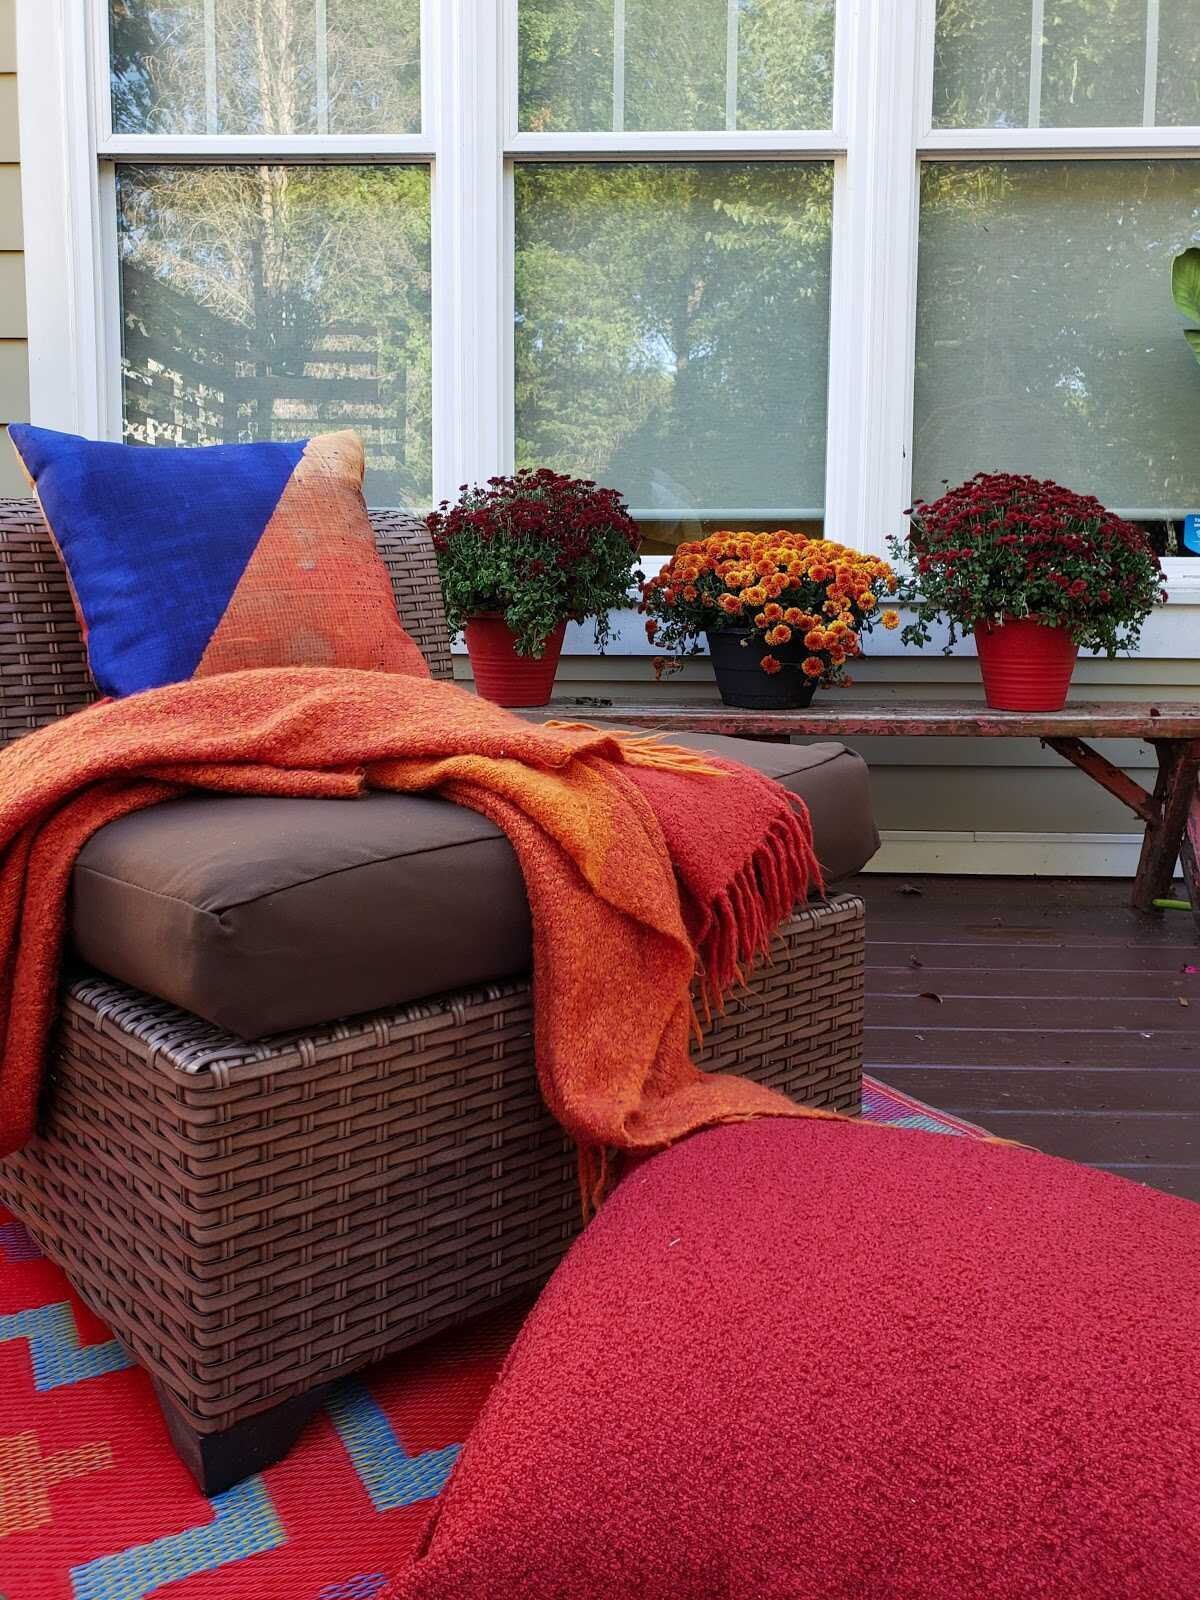 SmithHönig friend and designer Seana Freeman is embracing bold color, pattern and influences from around the world this fall season. To add to her glamorous deck refresh, Freeman turned to our exclusive line of outdoor pillows to fit in with her look and quality. Read on to see how you too can refresh your outdoor space with new fall decor.